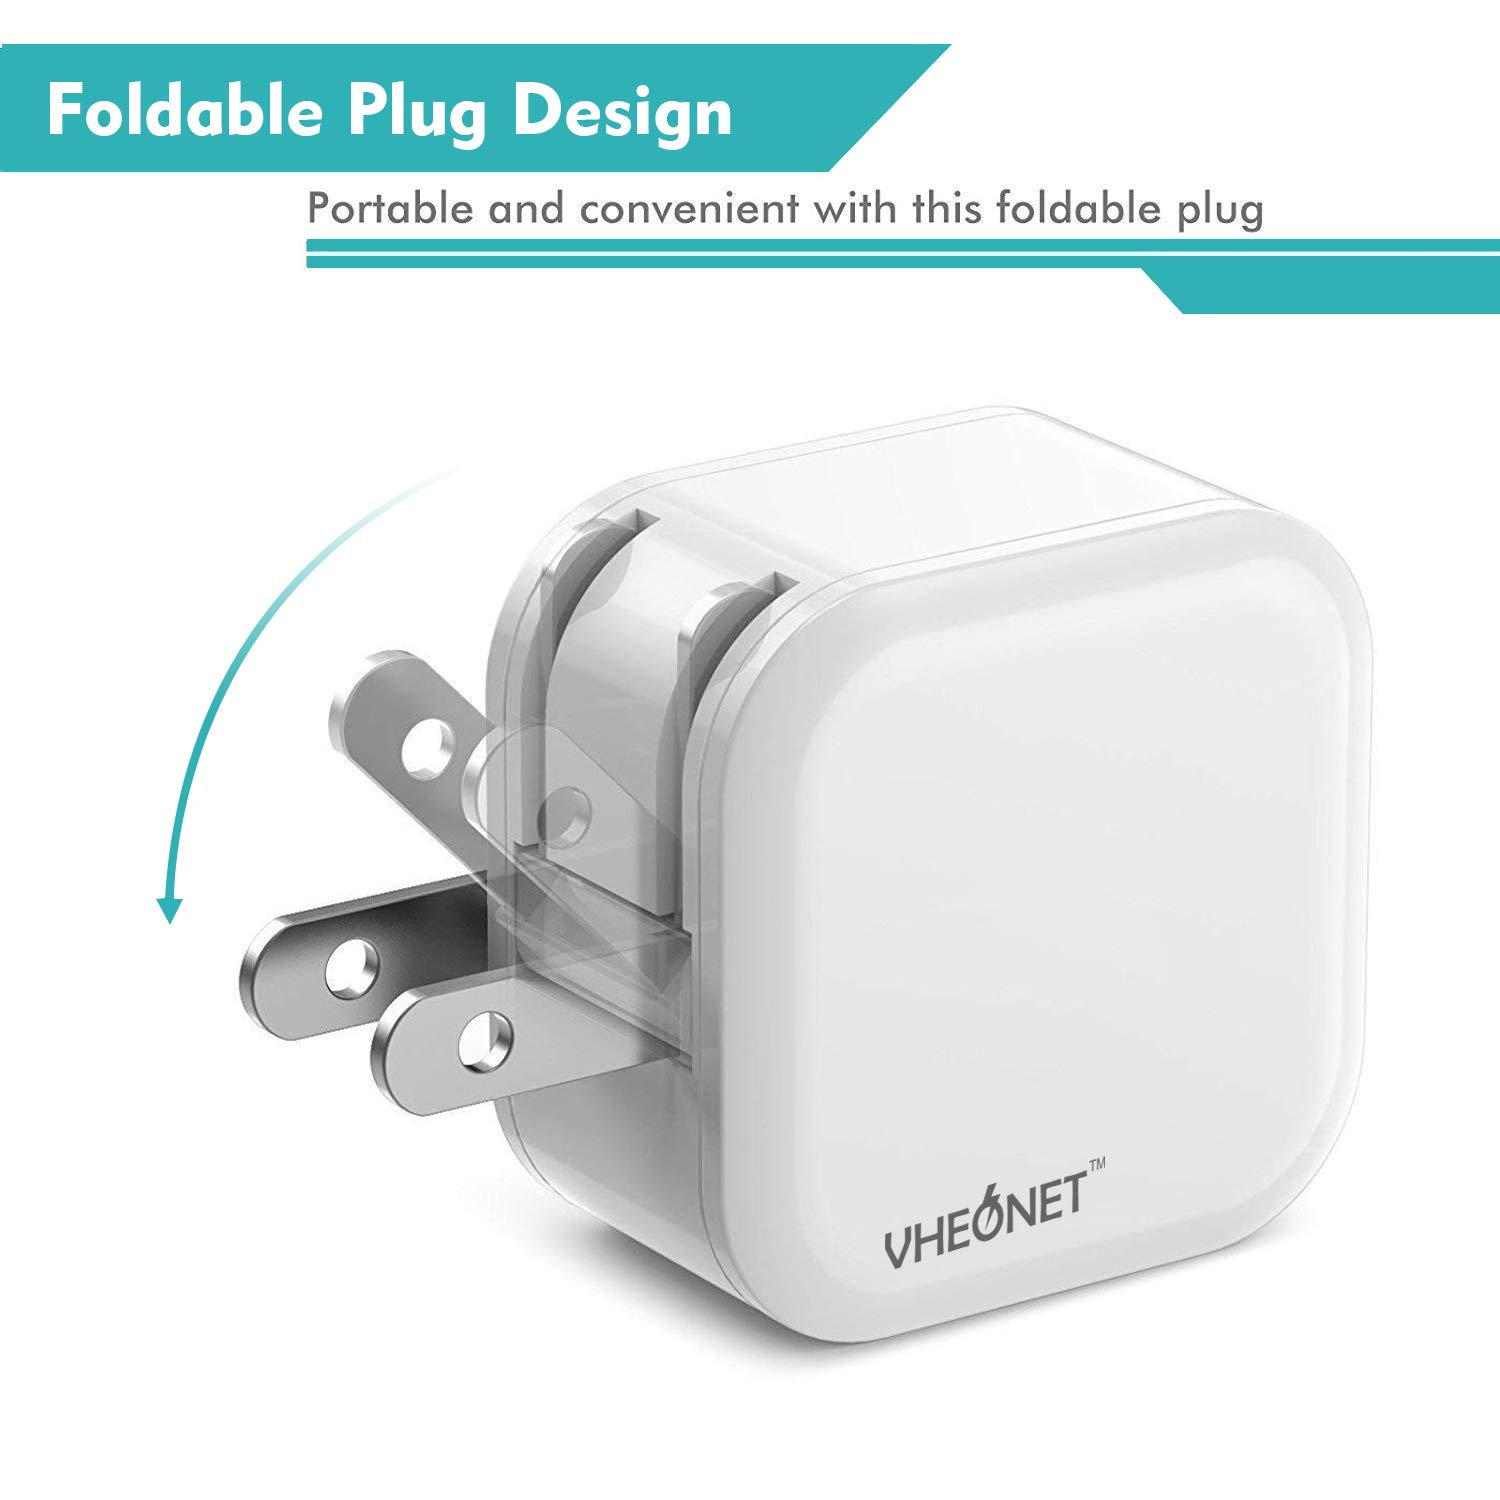 Quick Charge USB Wall Charger, 30W 2-Pack Fast Charger 3.0 + 2.4A Dual Ports Power Adapter with Foldable Plug for Samsung Galaxy, iPhone, iPad, Google Pixel, Tablet and More